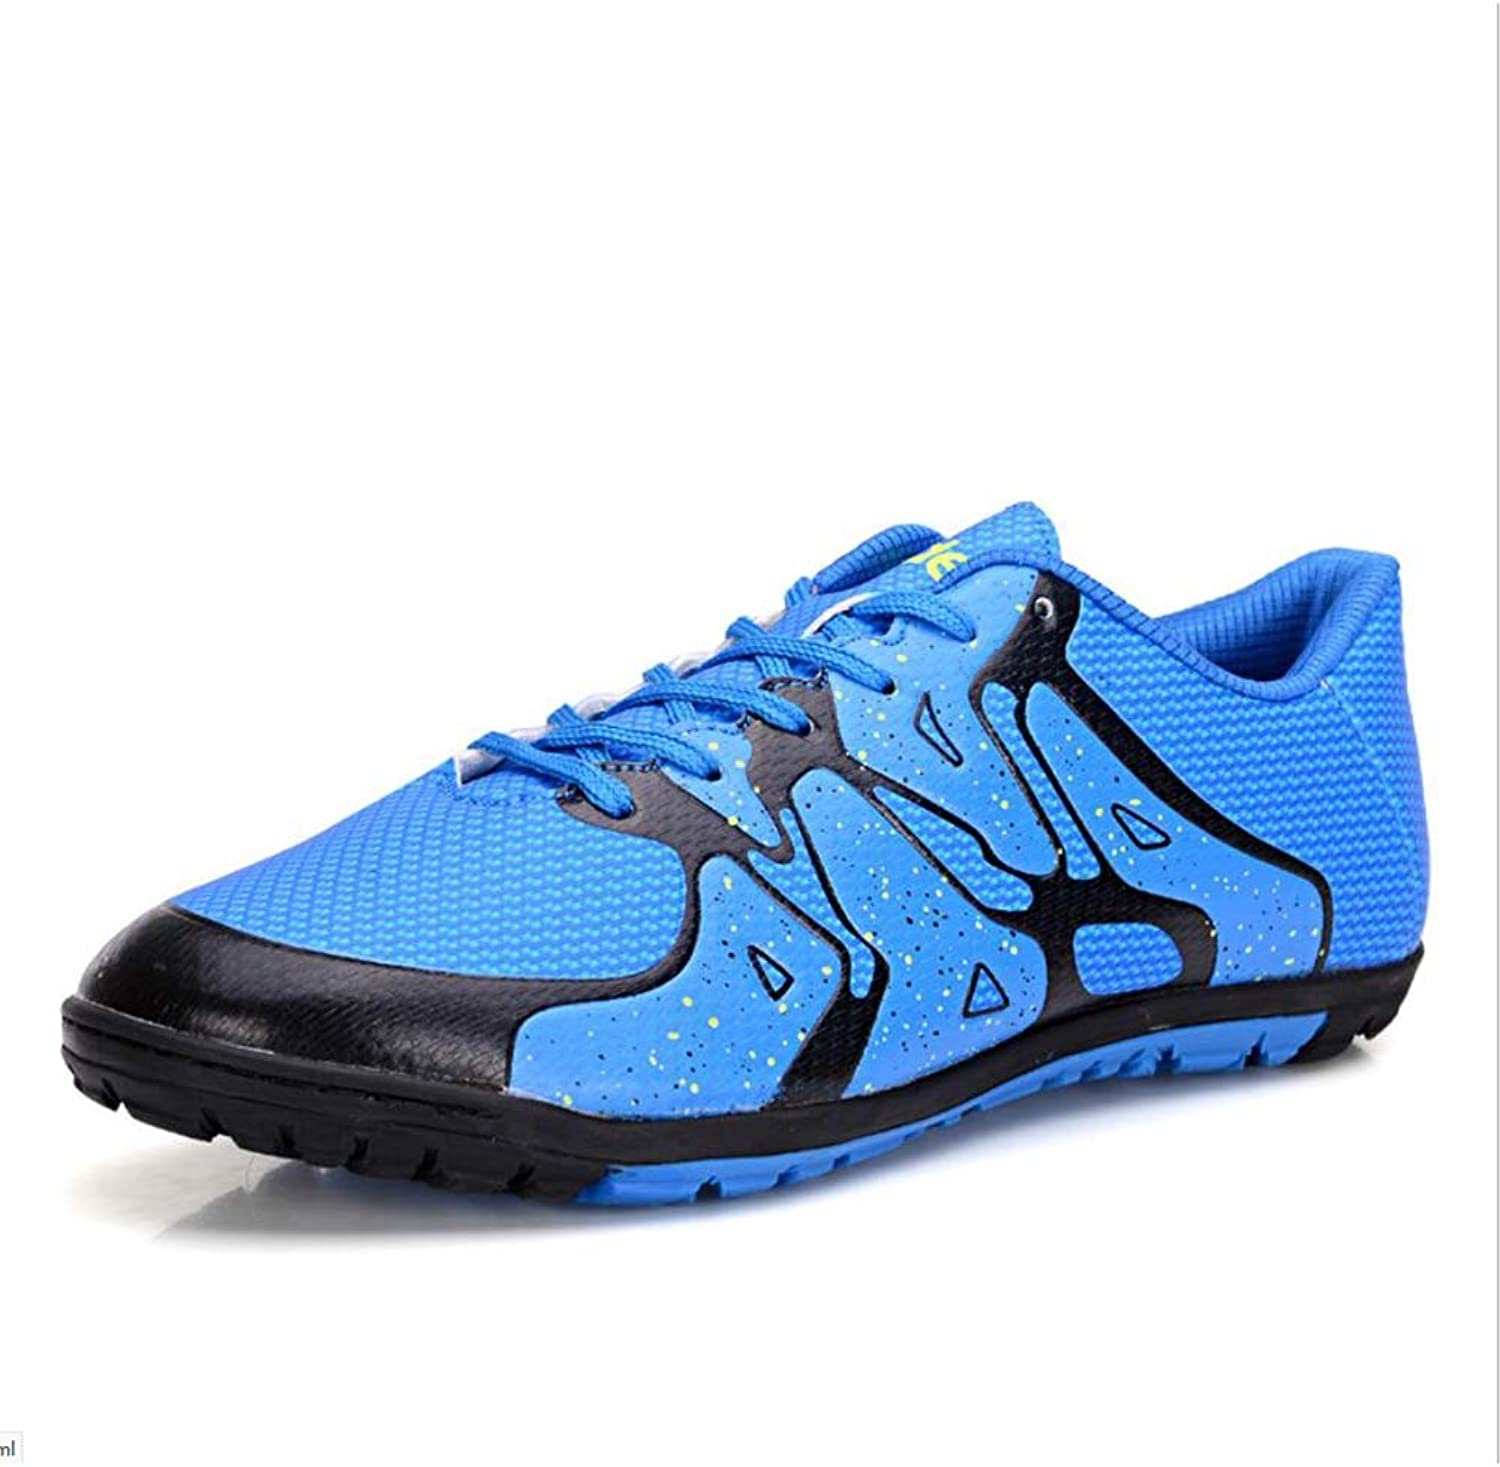 Men's Soccer shoes Personalityn Soccer Cleats Football Boots Football Soccer Anti-Slip,Low-Top Women's Sneakers,Comfort,Short Spike Training shoes (color   C, Size   41)